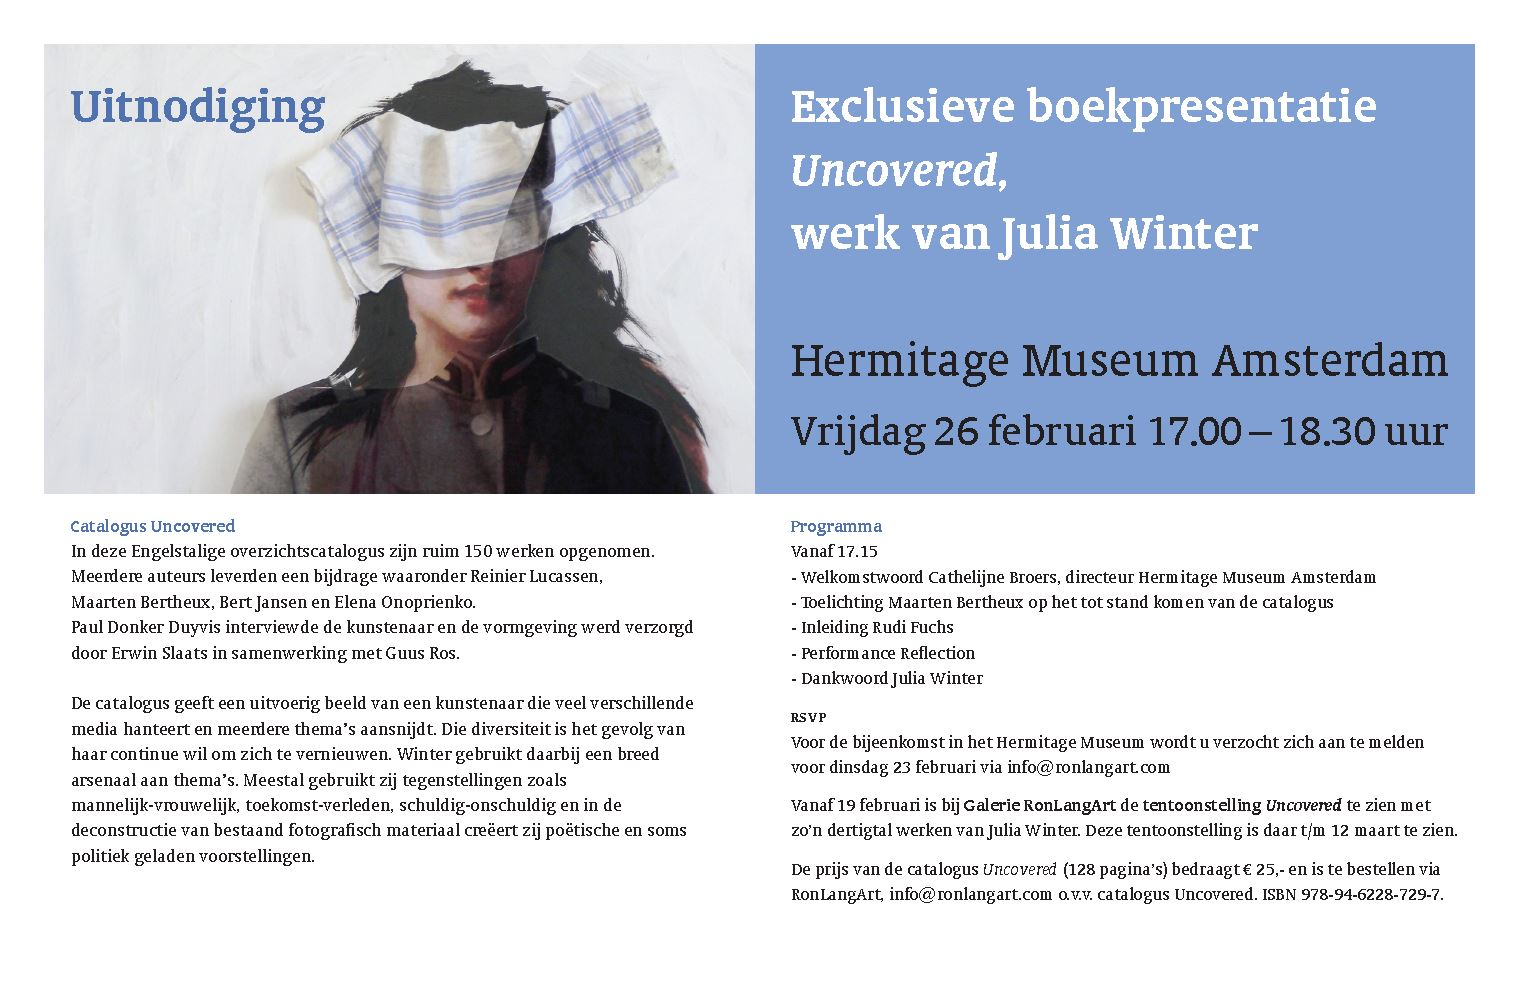 Uncovered book presentation at Hermitage museum